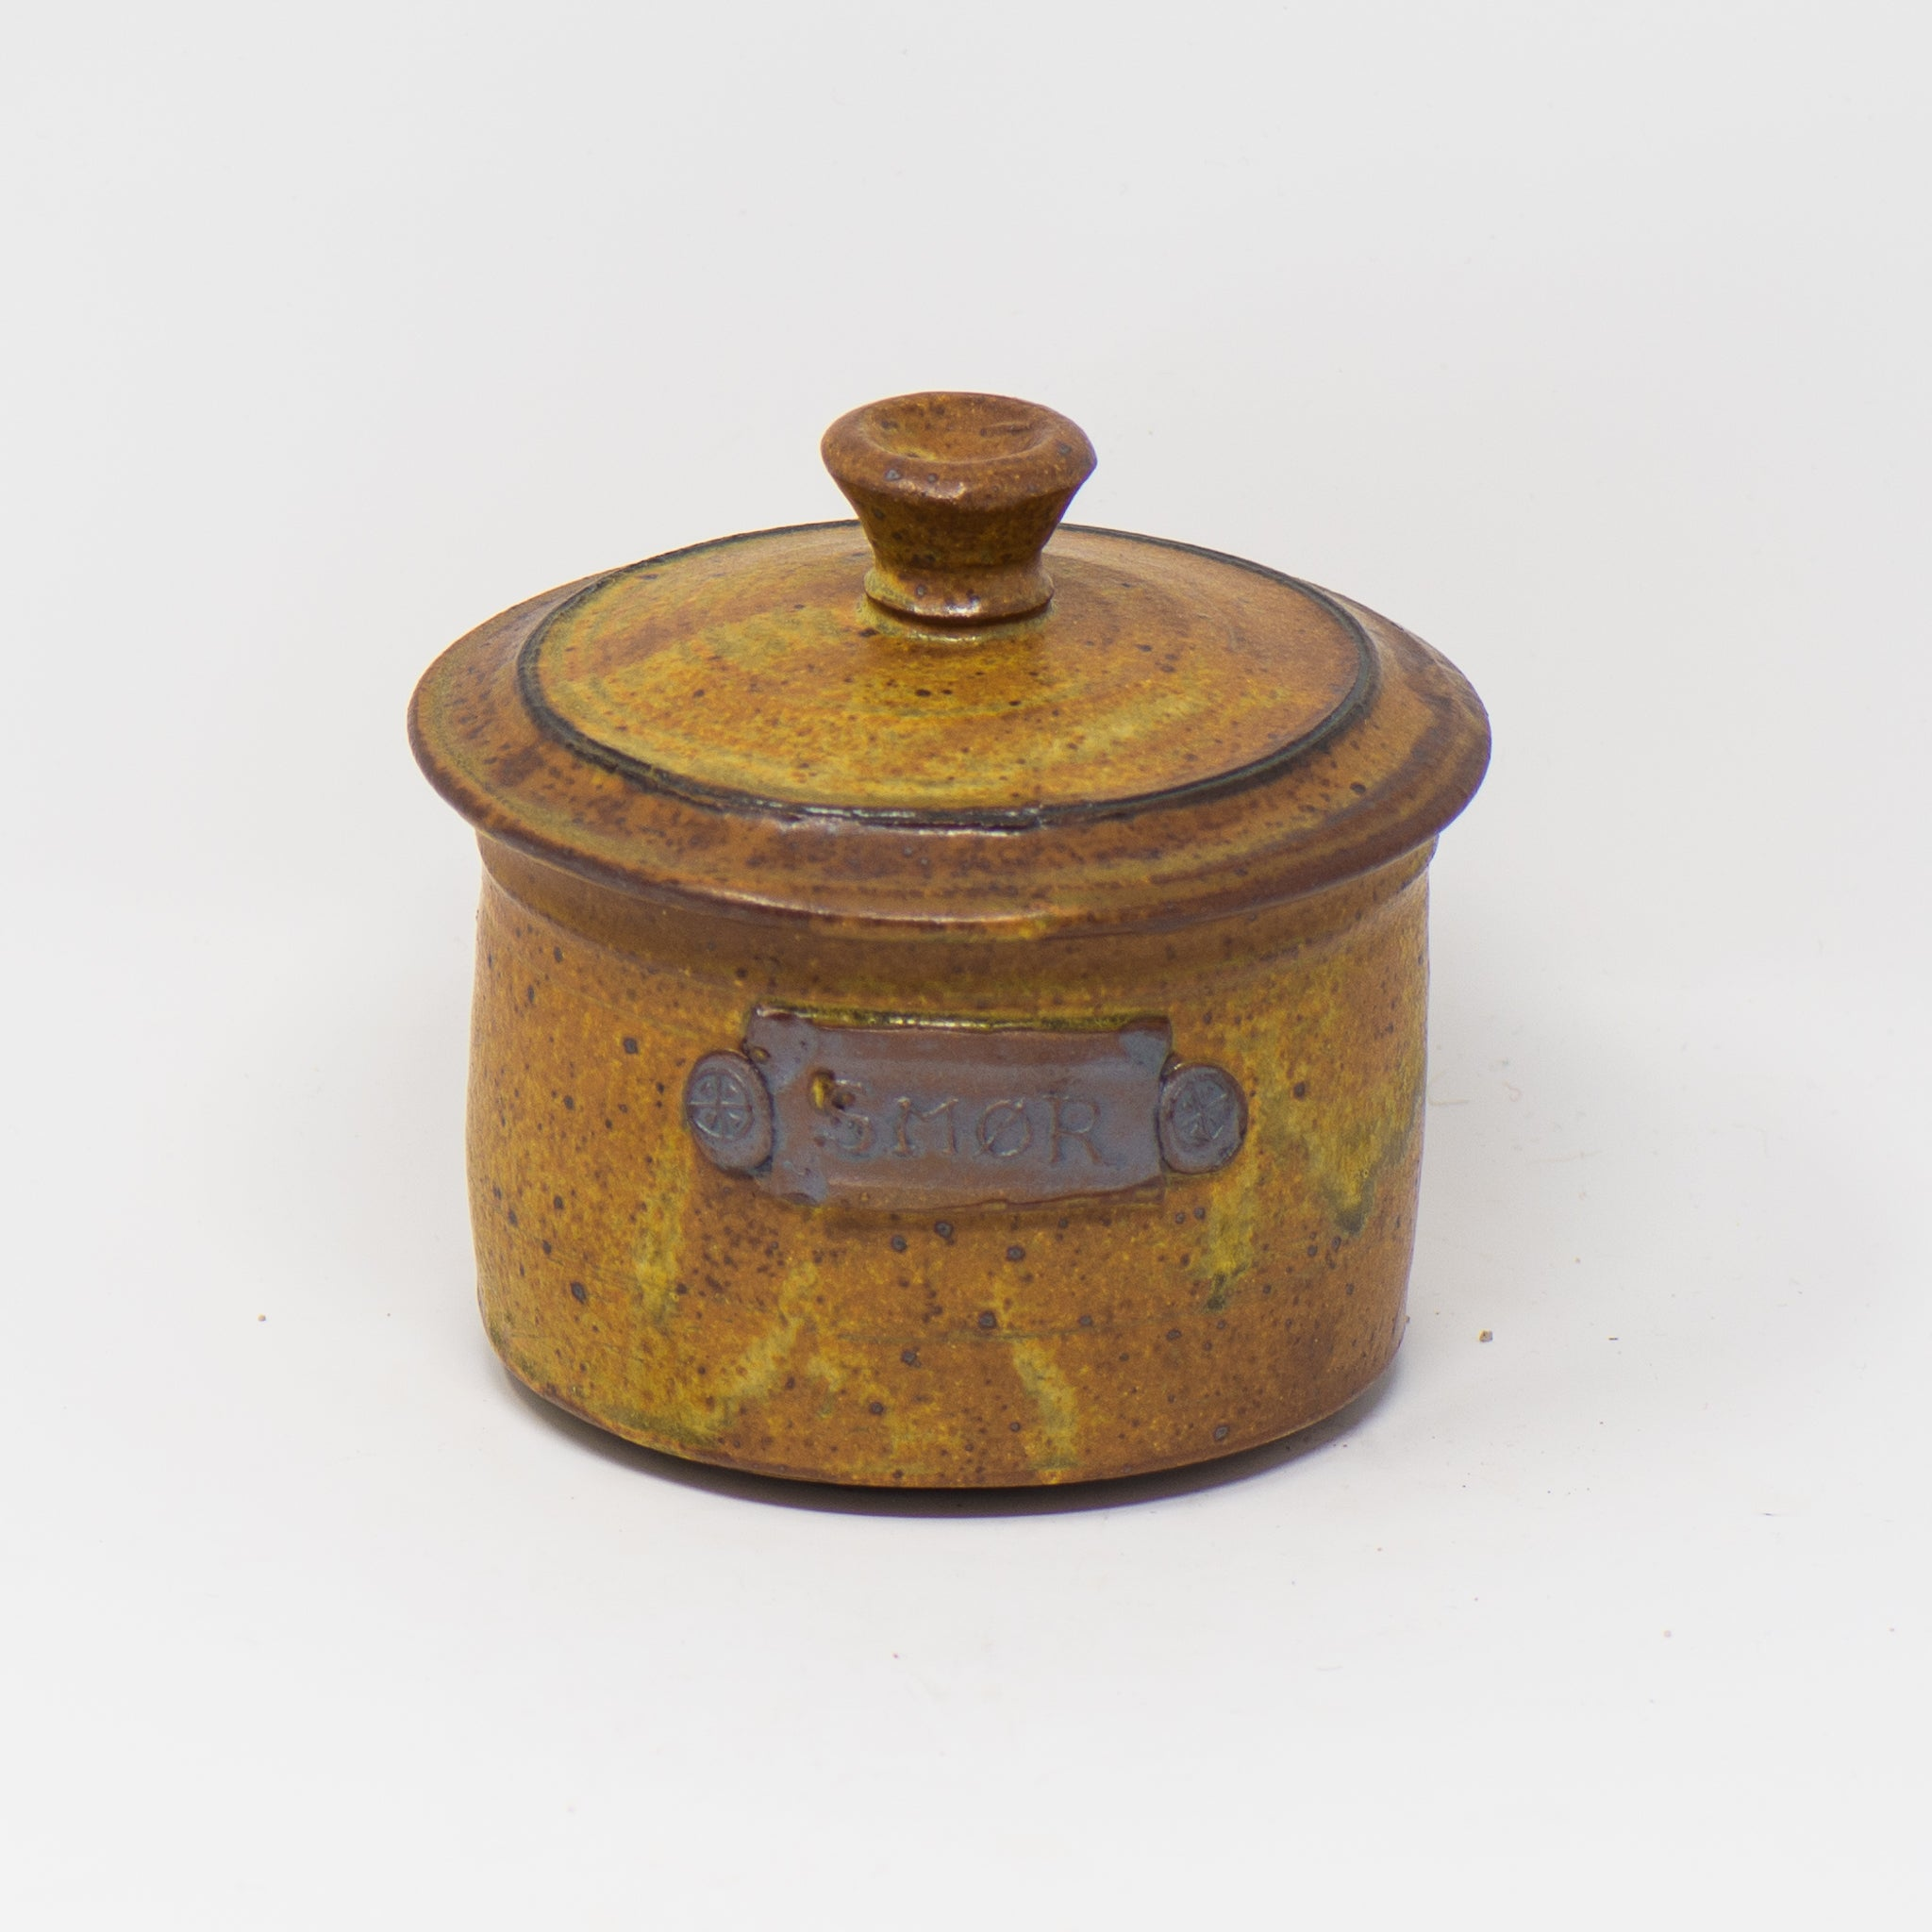 Smør (Butter) Jar